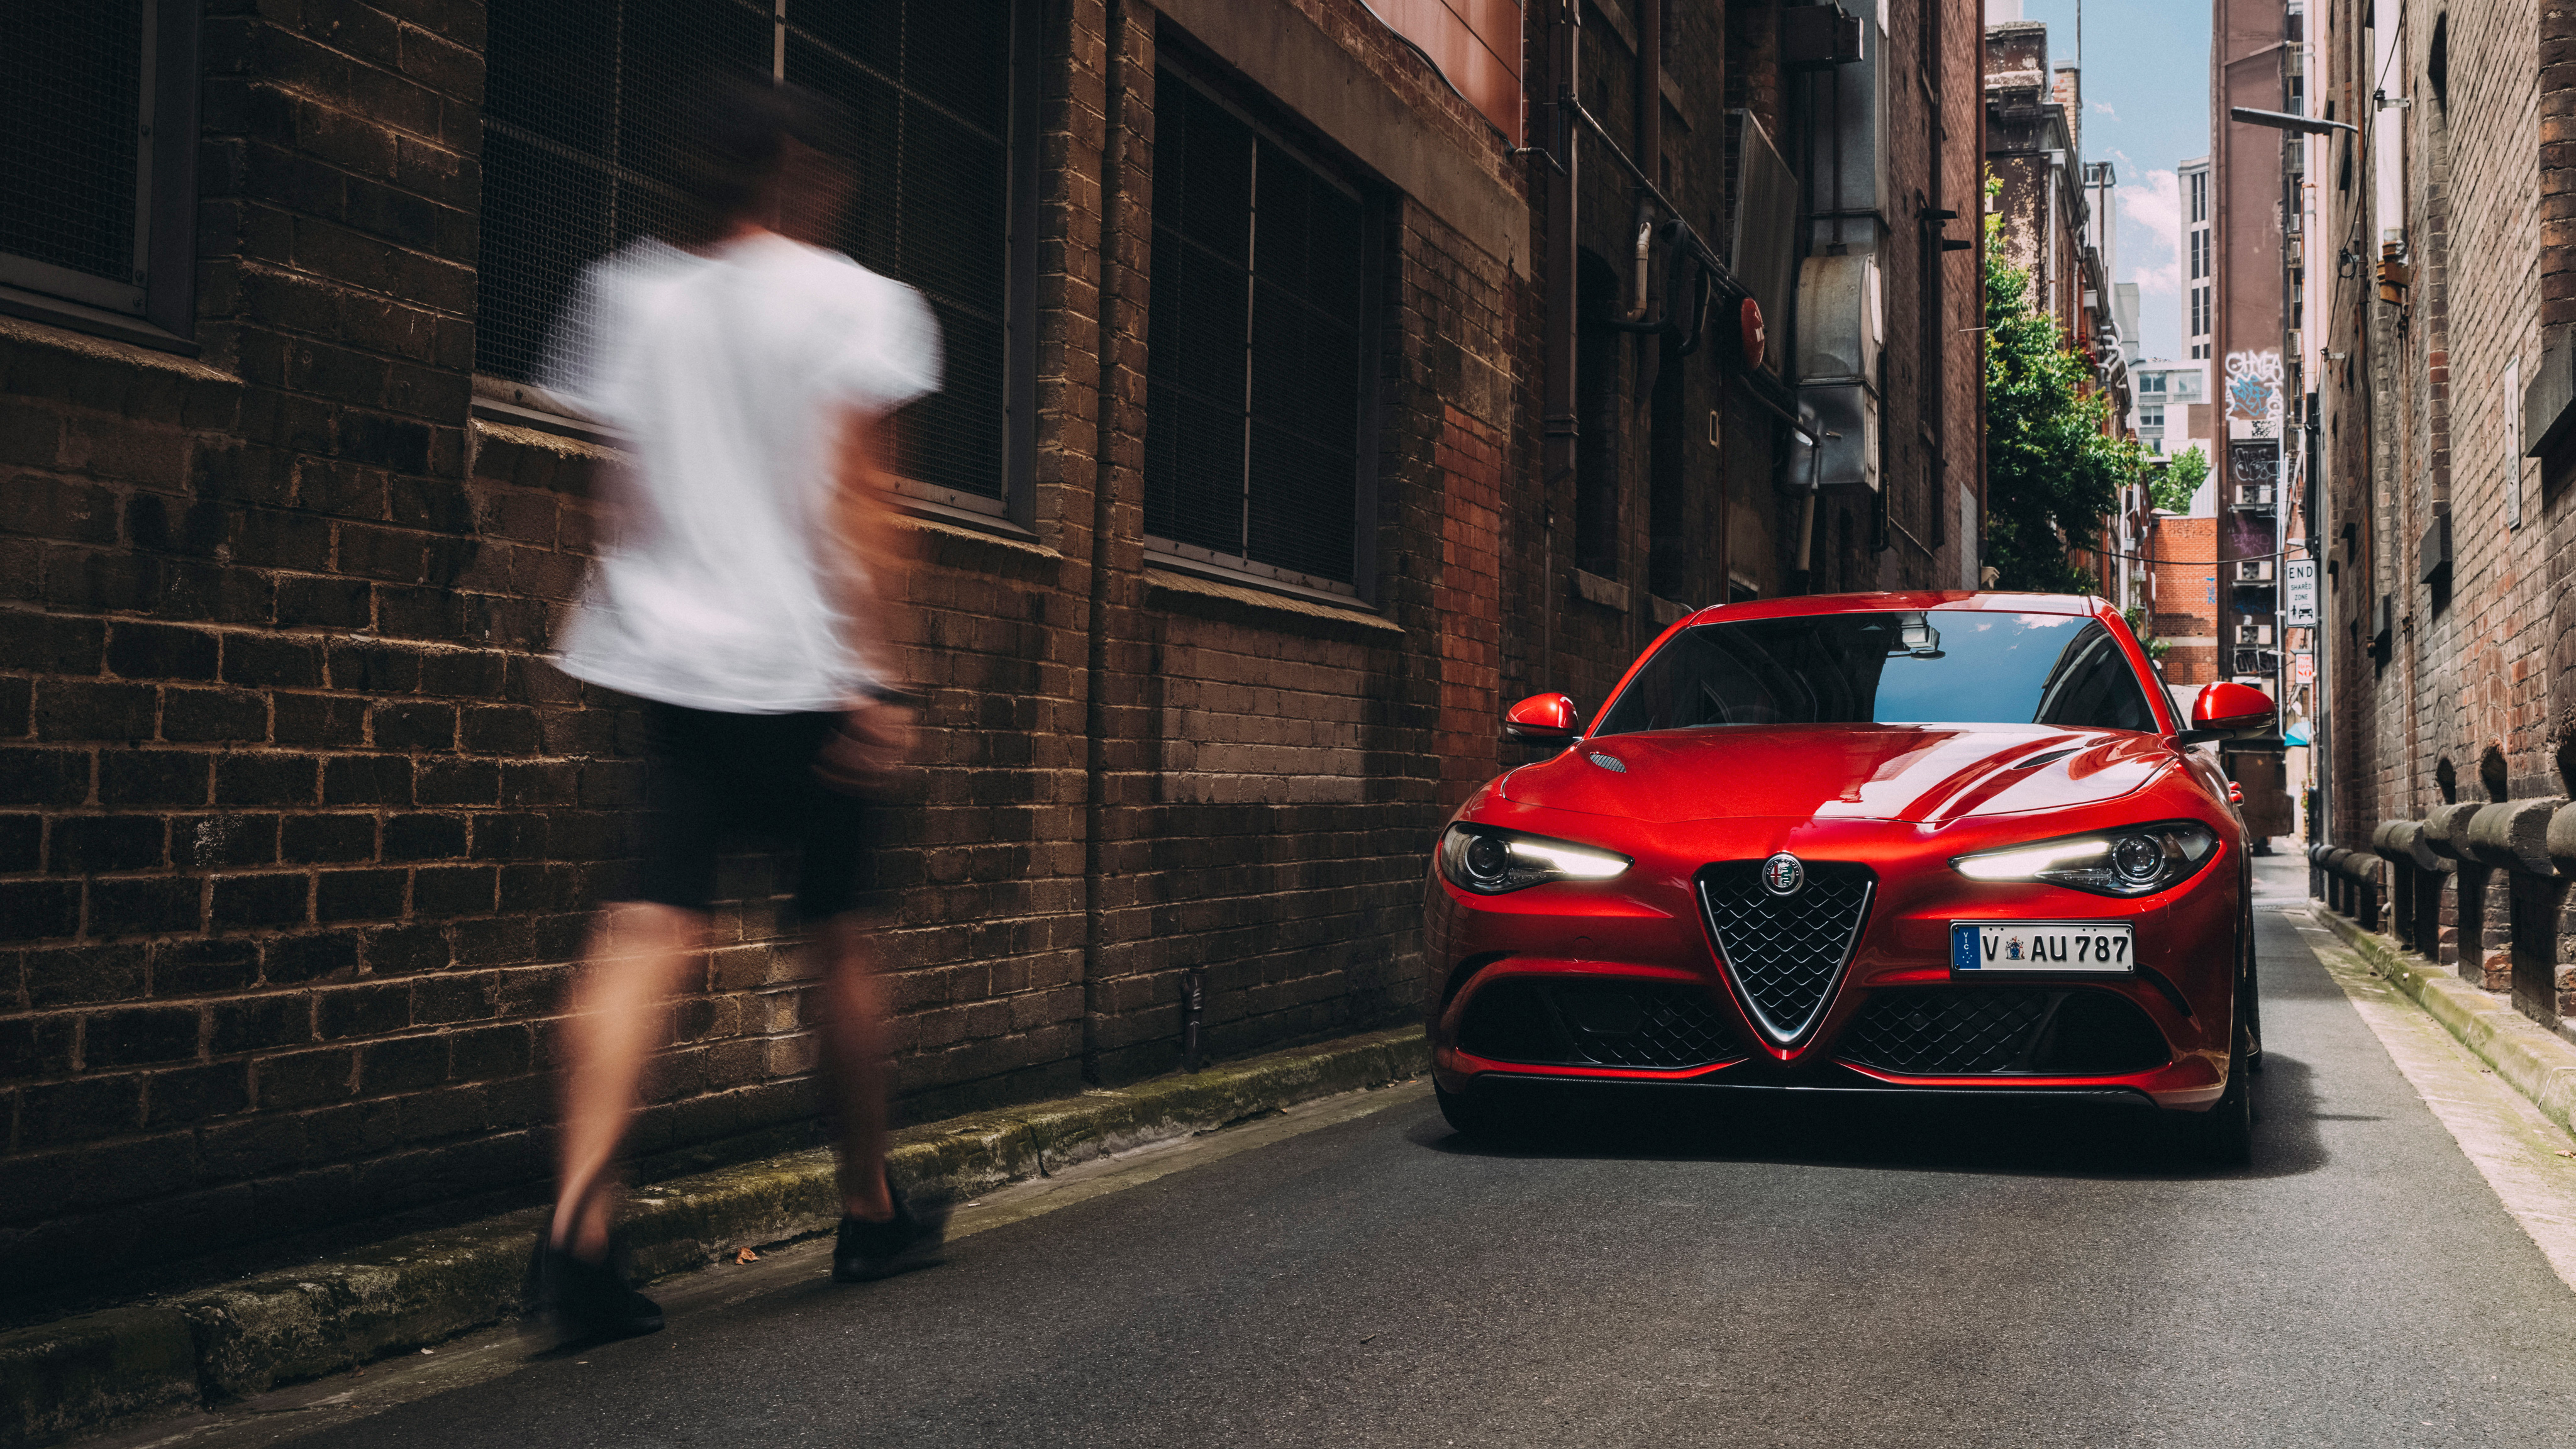 Alfa Romeo Giulia Quadrifoglio 2017 4k Wallpaper Hd Car